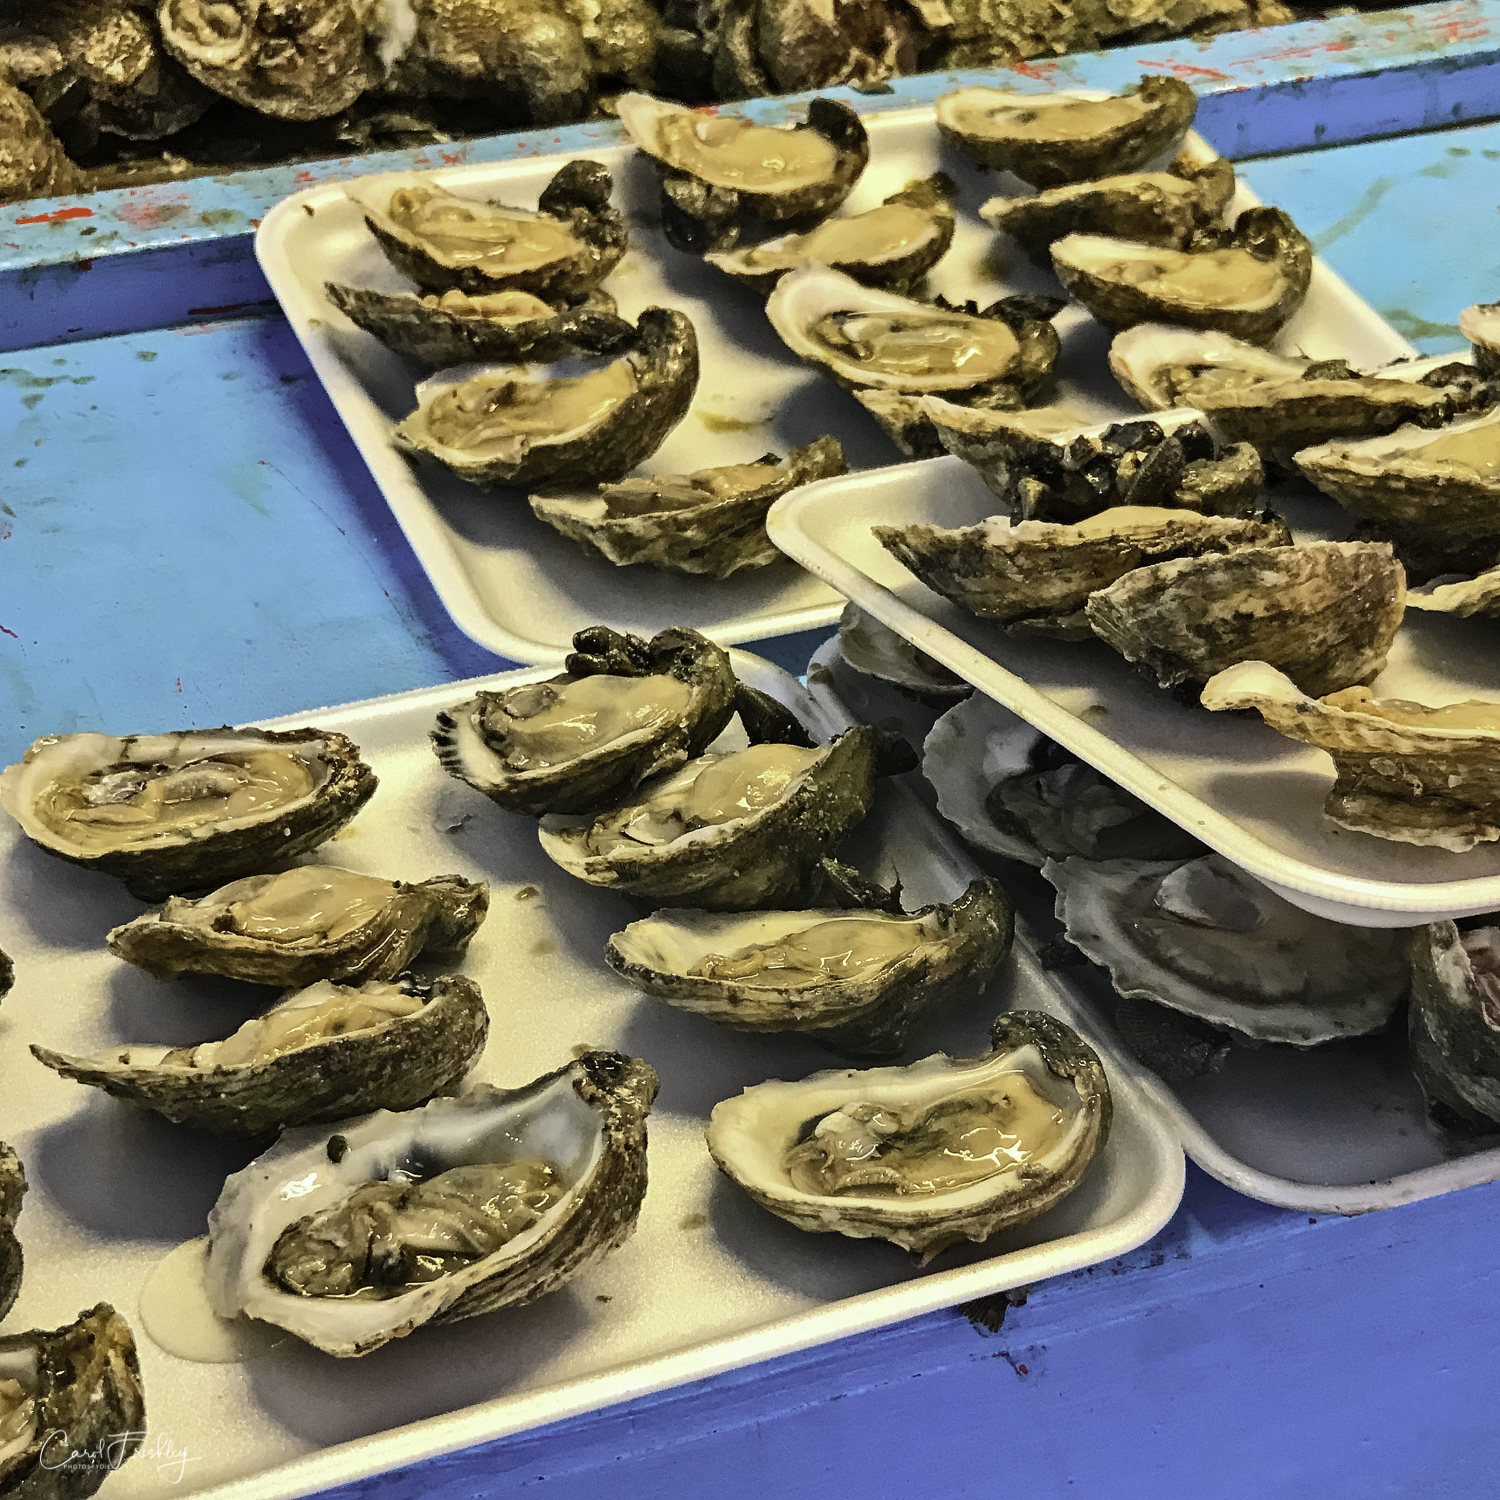 Every spring an Oyster Festival is held with the proceeds to benefit the Rockport Volunteer Fire Department. theses lovely oysters are shucked as you watch and sell for $1 each. They were very popular, with some folks walking off with a tray of 30!